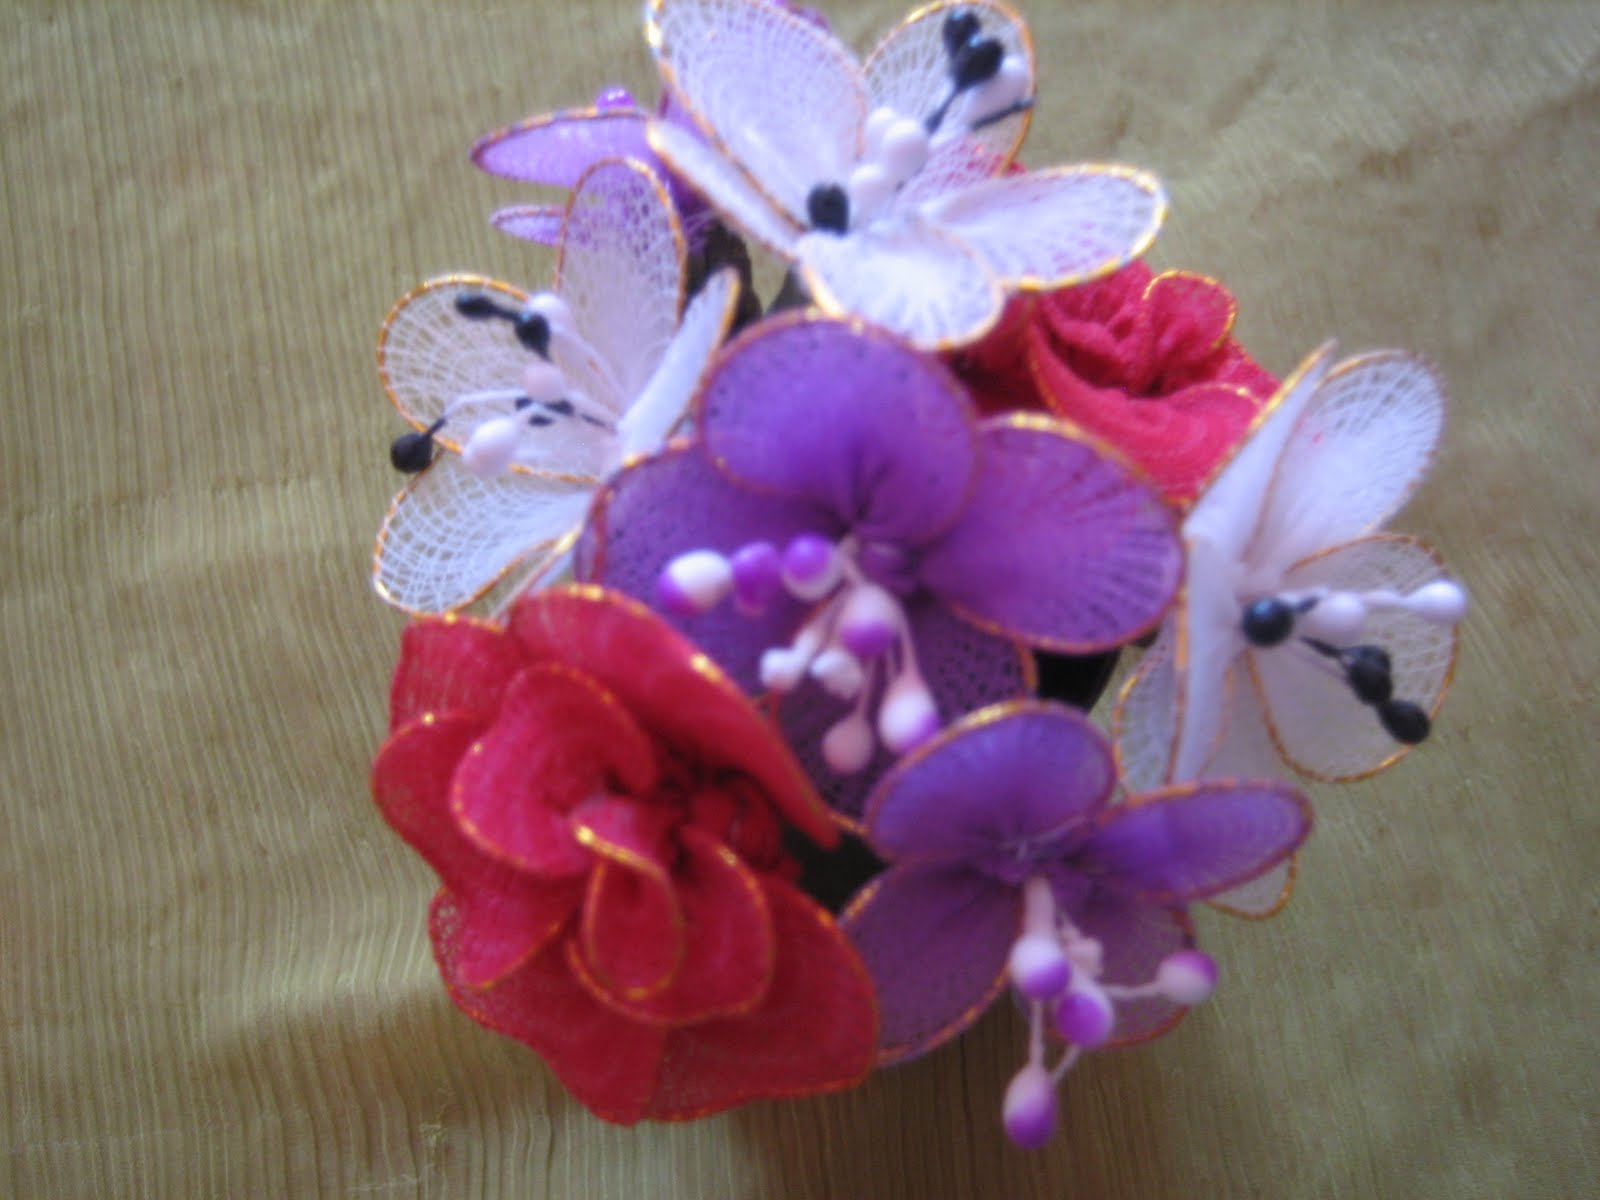 ... of stocking cloth and prepared 3 types of flowers and arranged it